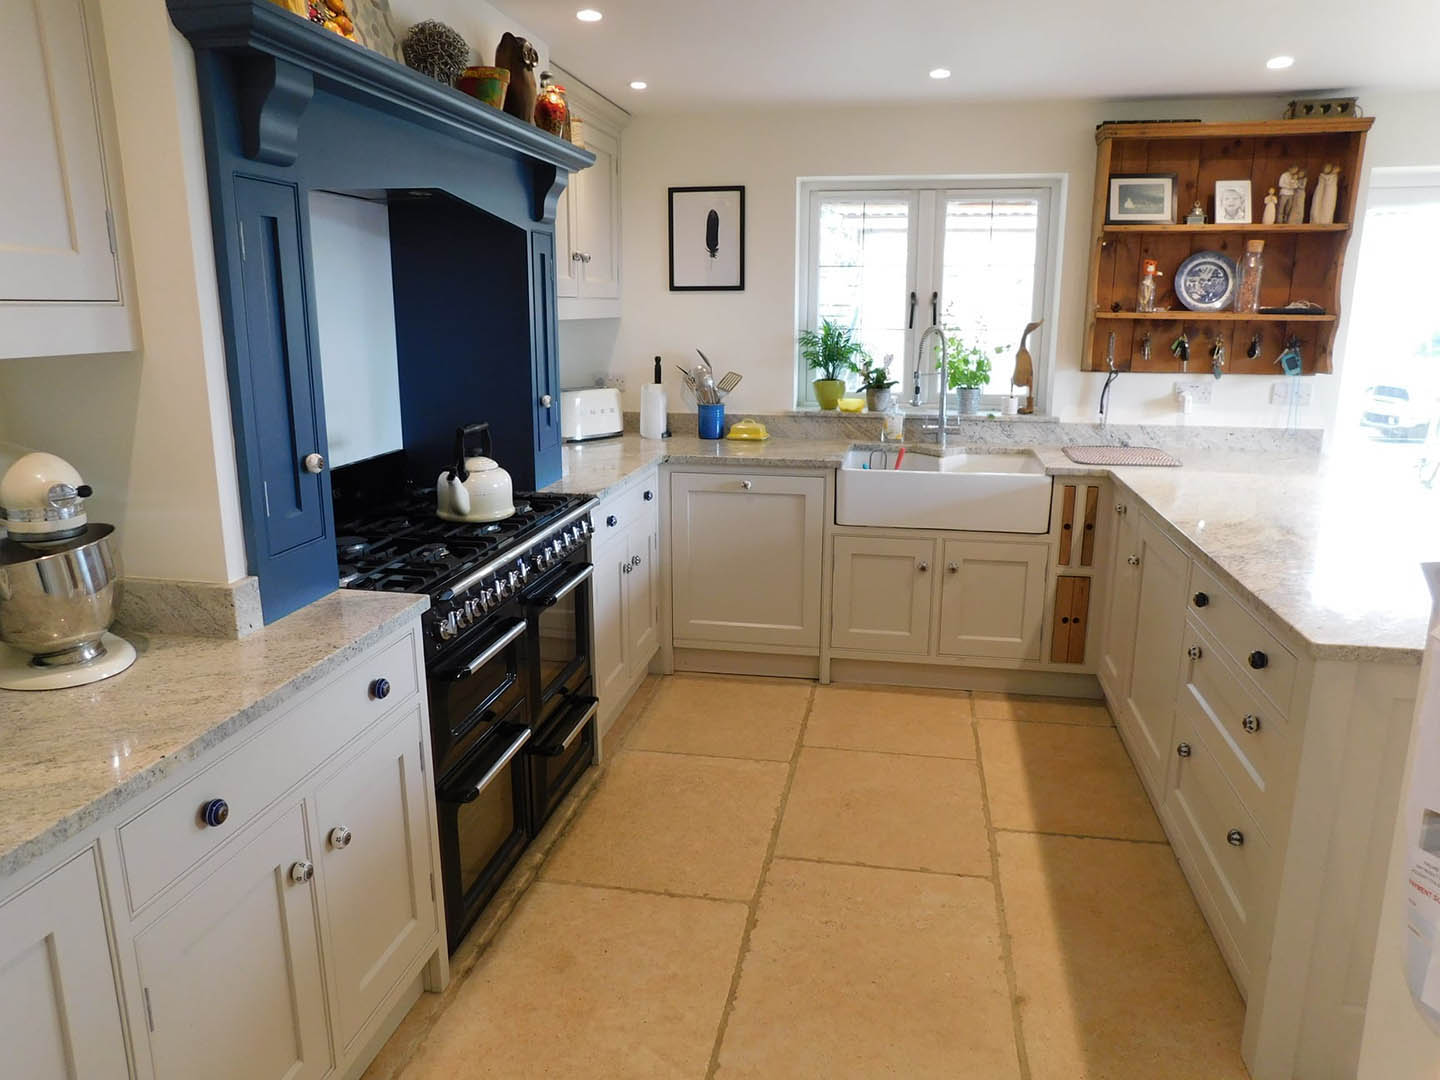 A wide view of a bespoke fitted kitchen